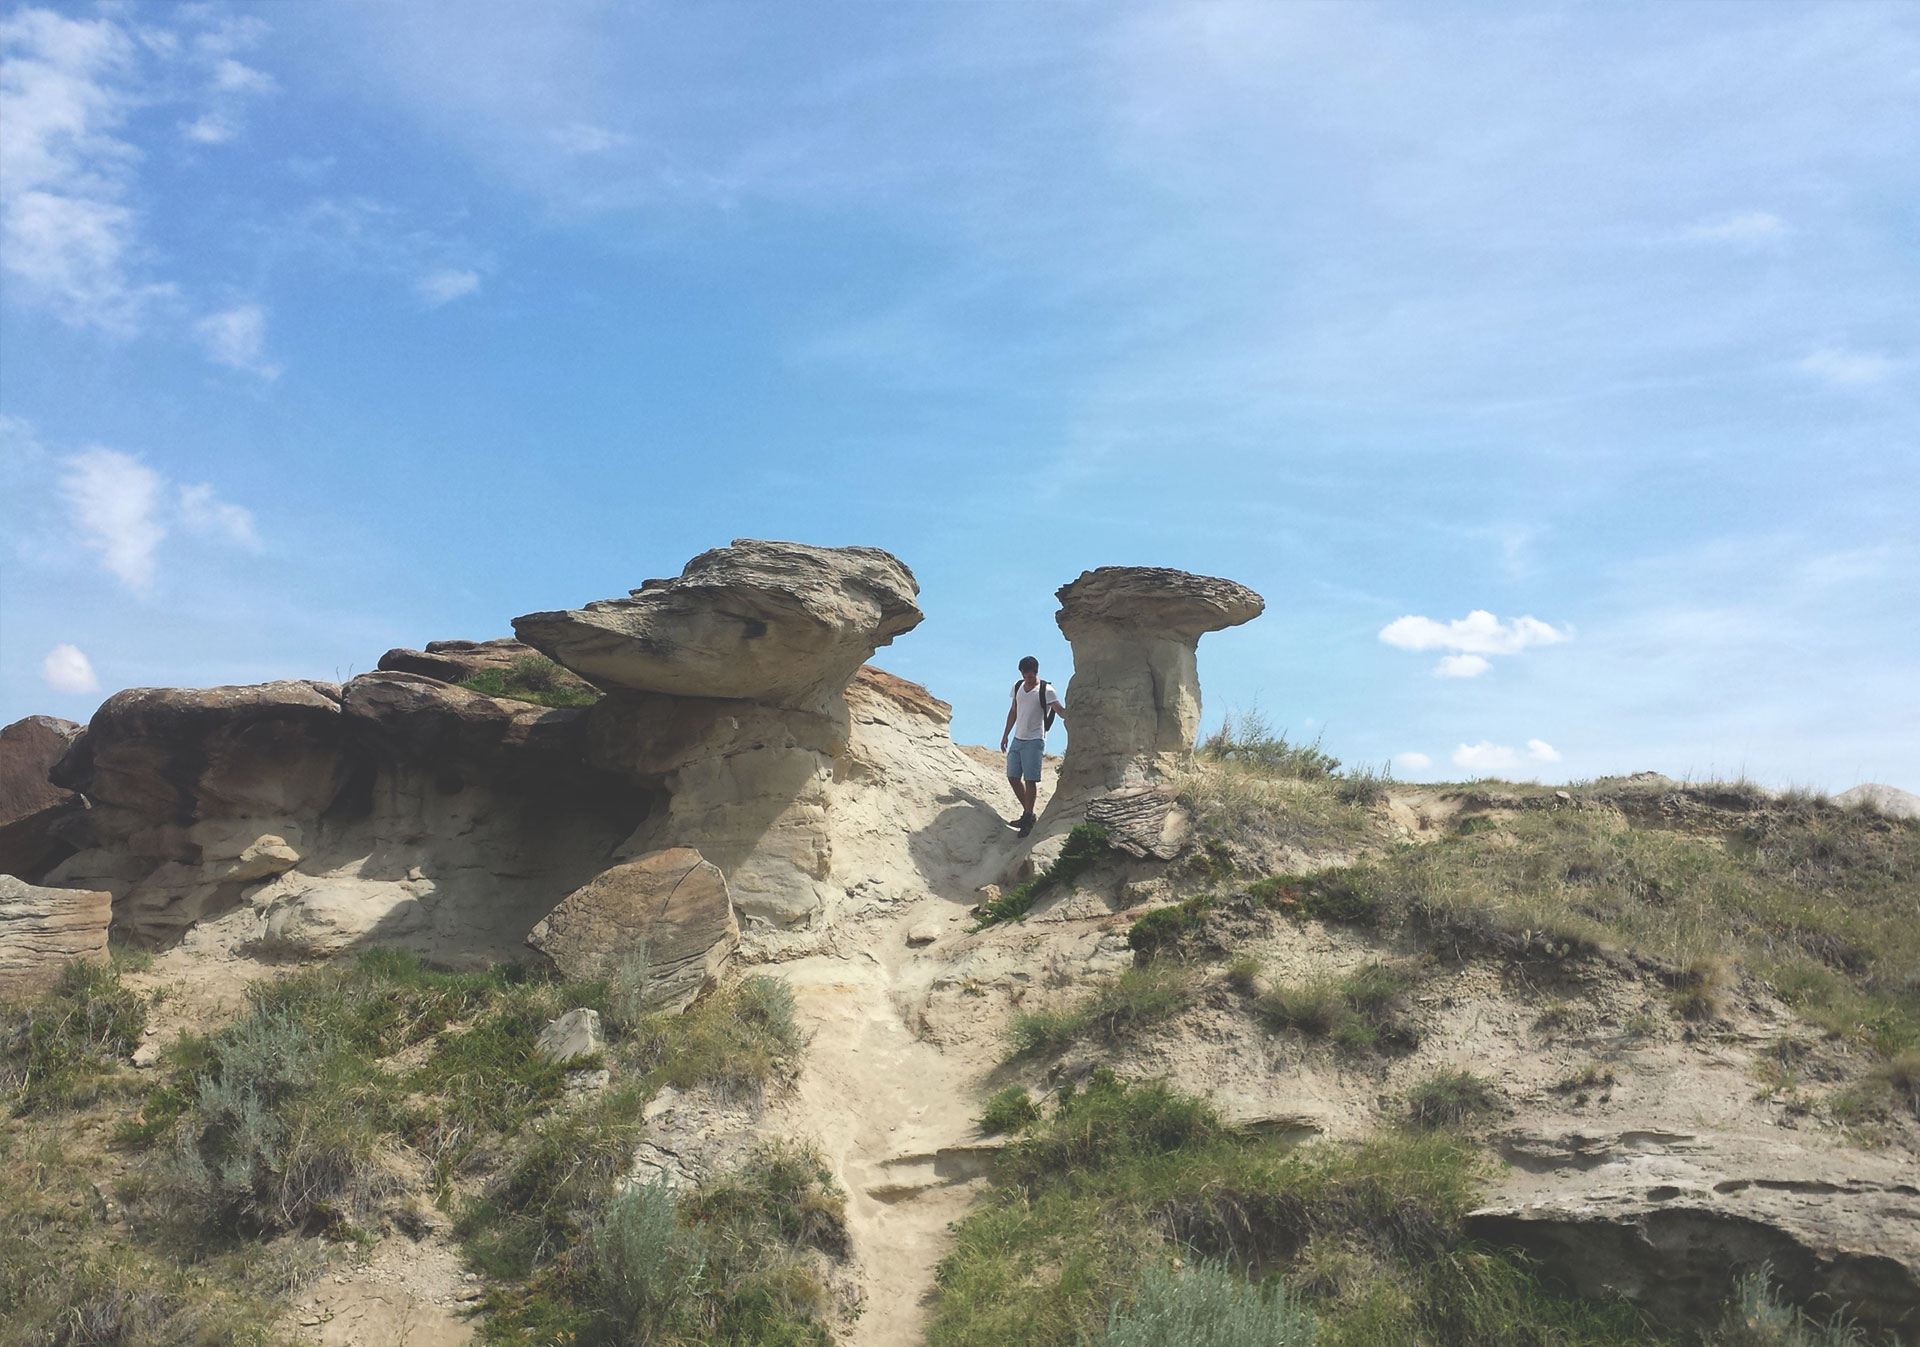 Tour Drumheller (Photo credit: Nate @natesvscrocodile).